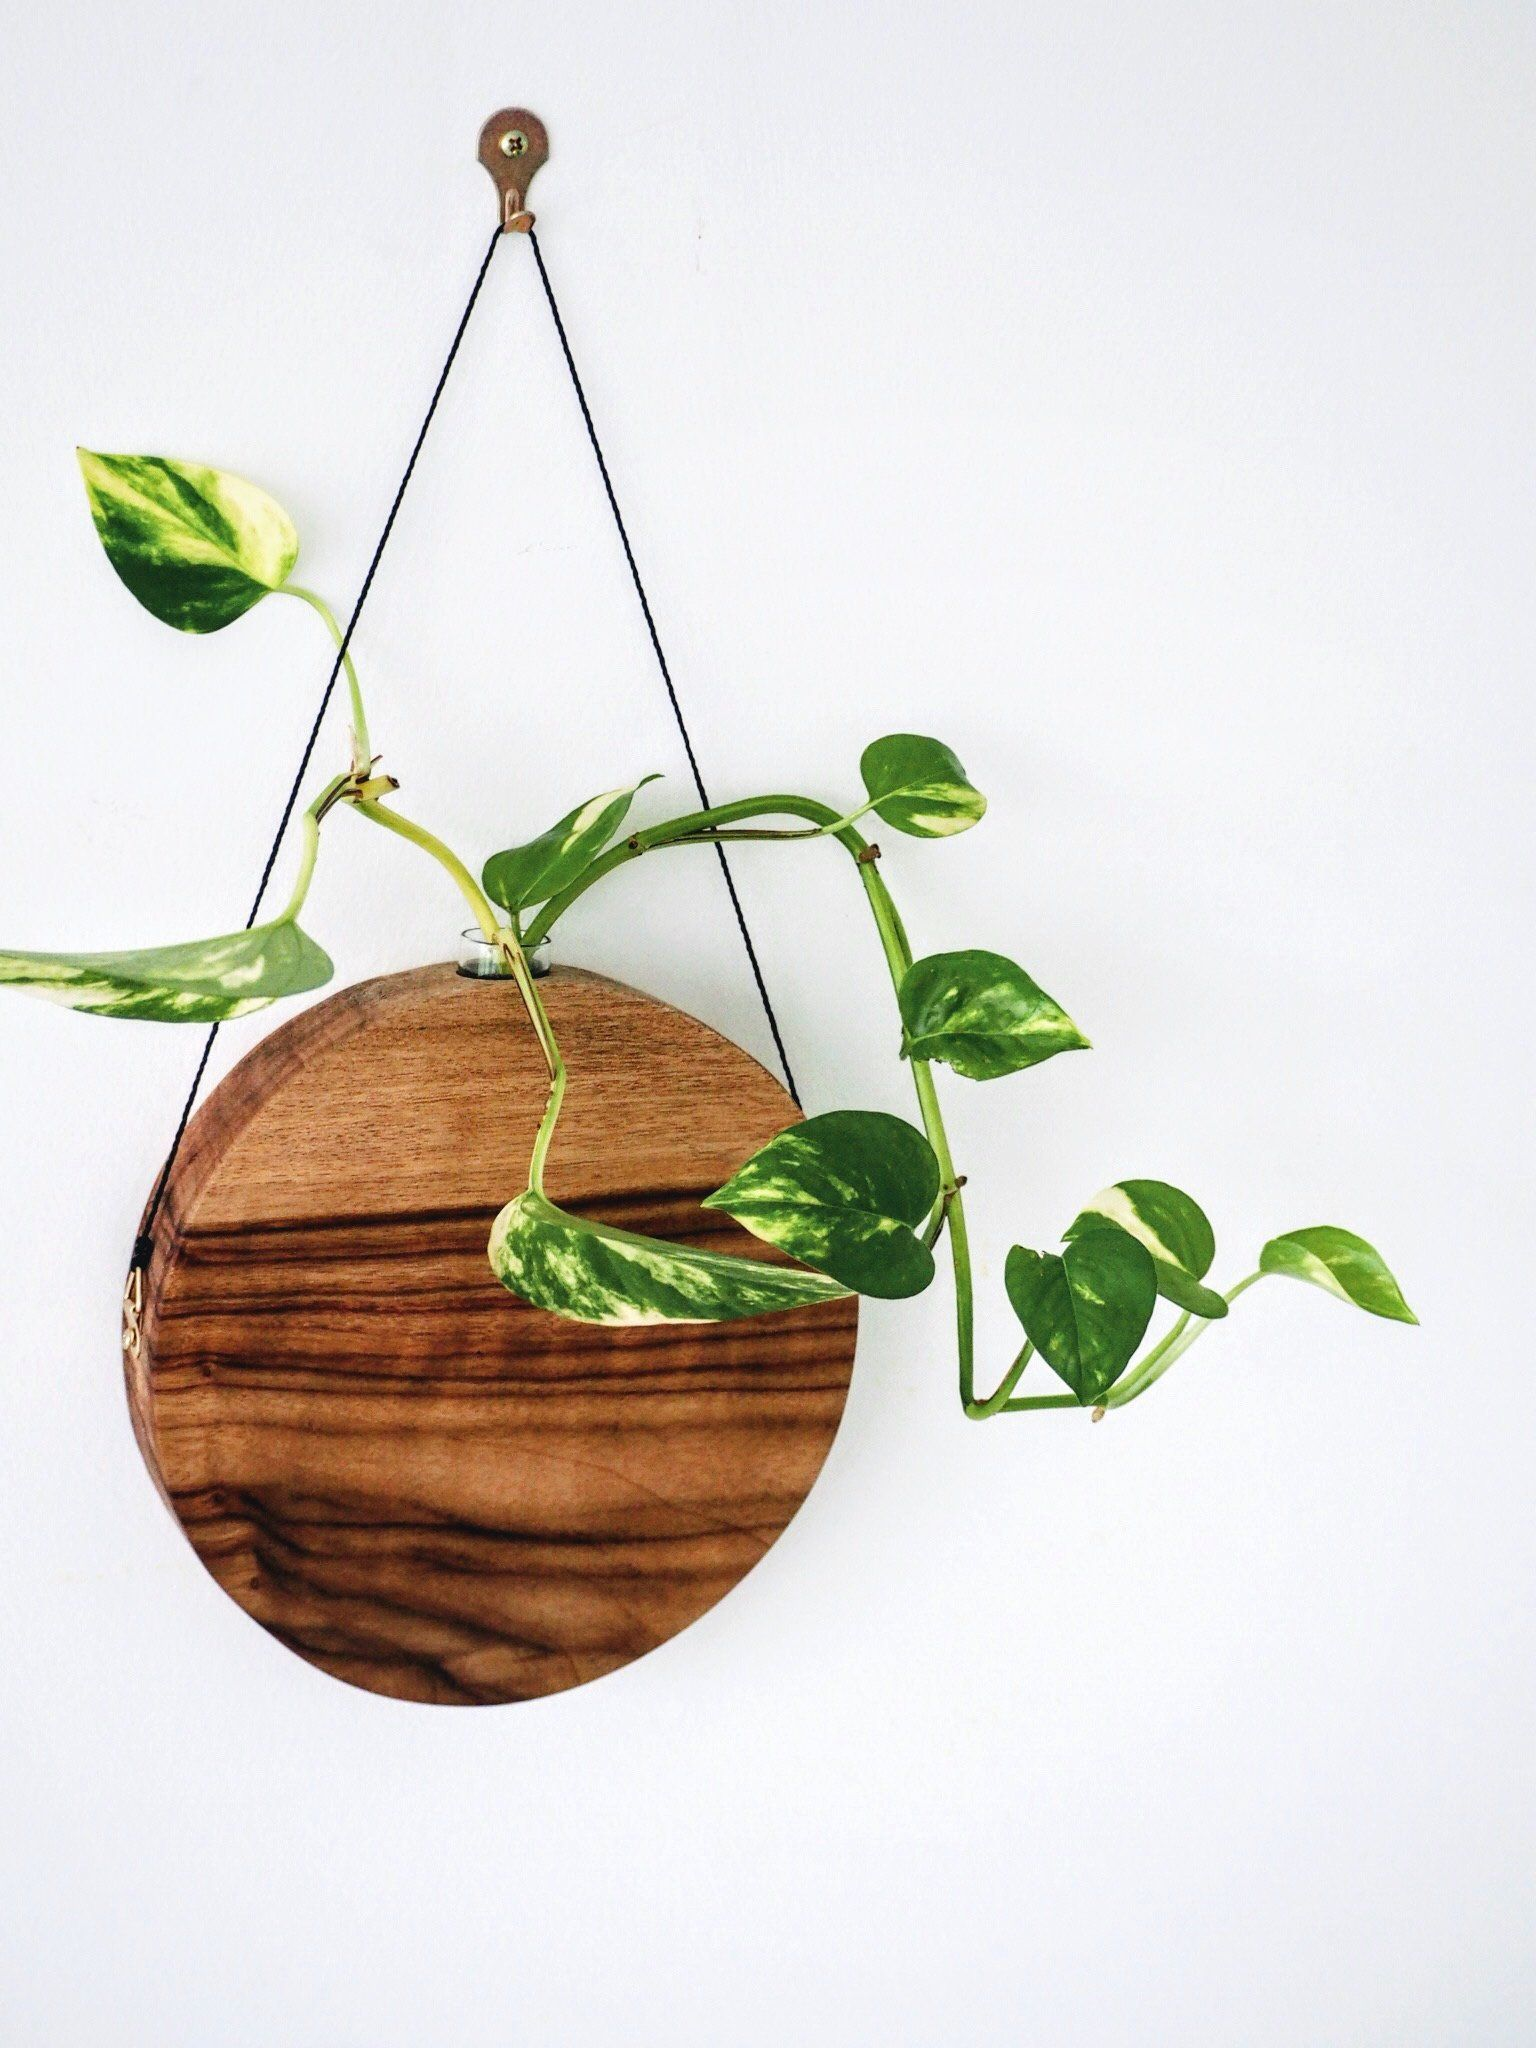 High Quality Wall Decor , Timber Vase , Decor , Handcrafted , Handmade Decor , Camphor  Laurel , Wall Accent , Decorative Items , Hanging Plants By FabianaLoschi  On Etsy